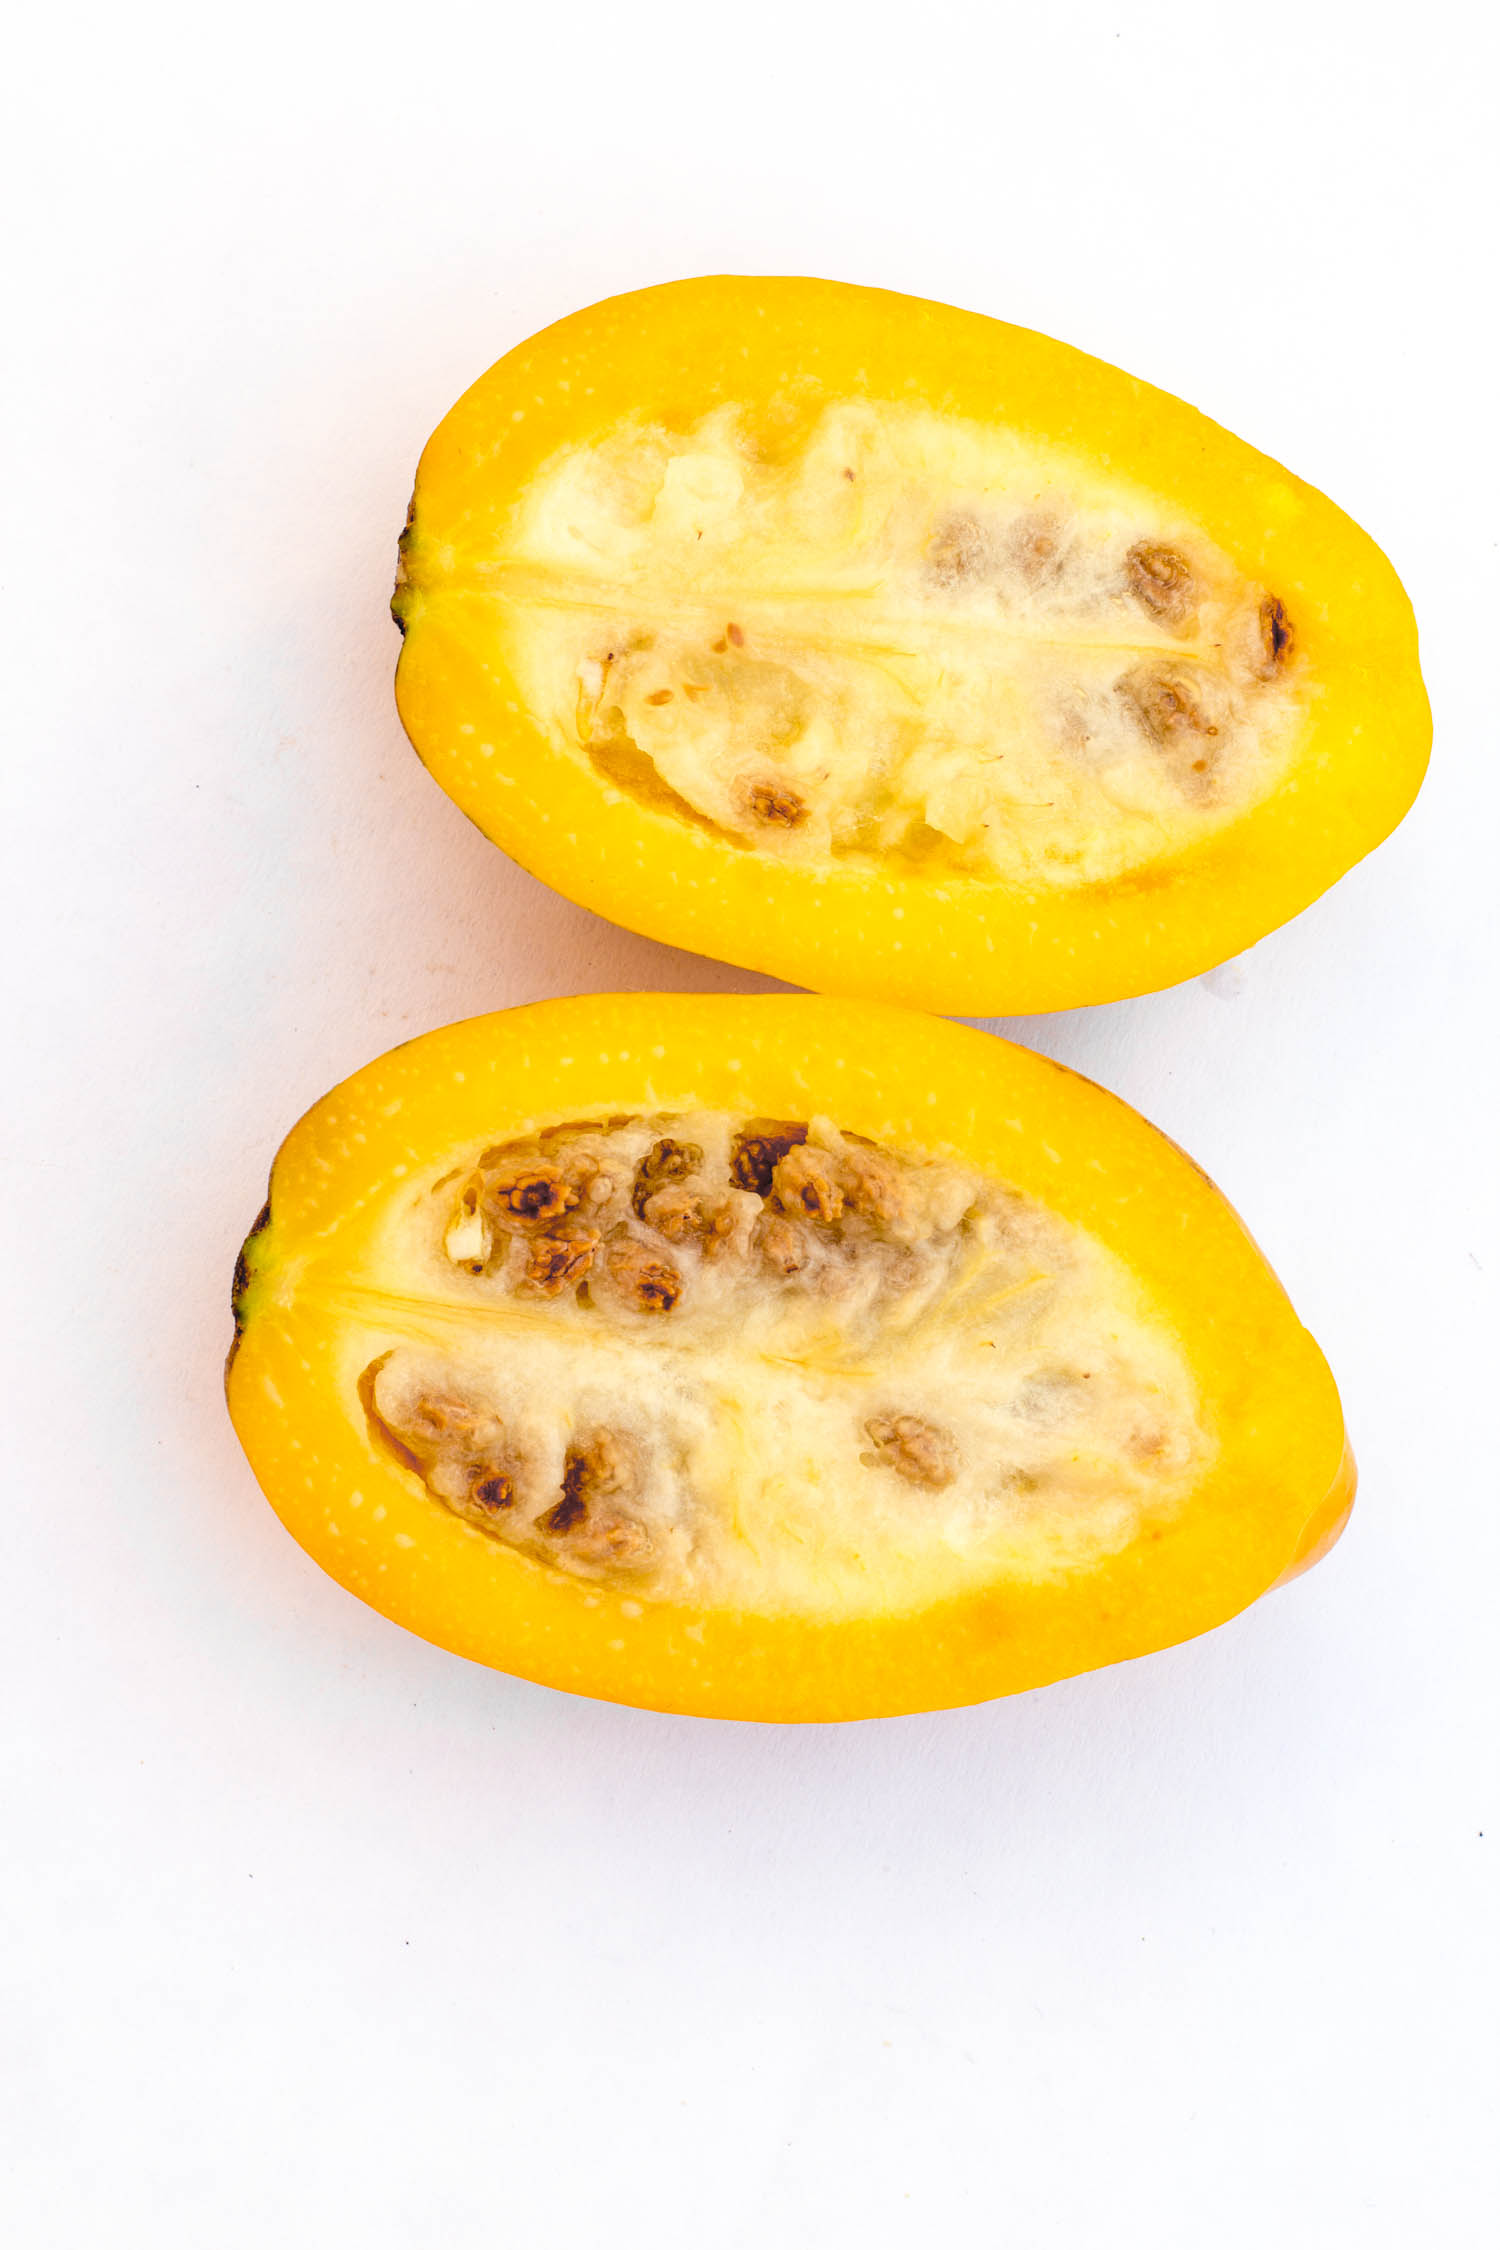 """Fresh and tasty Arequipena papaya with seeds isolated on white, in Arequipa, Peru. Smaller than usual this papaya is called """"Papaya Arequipea""""."""